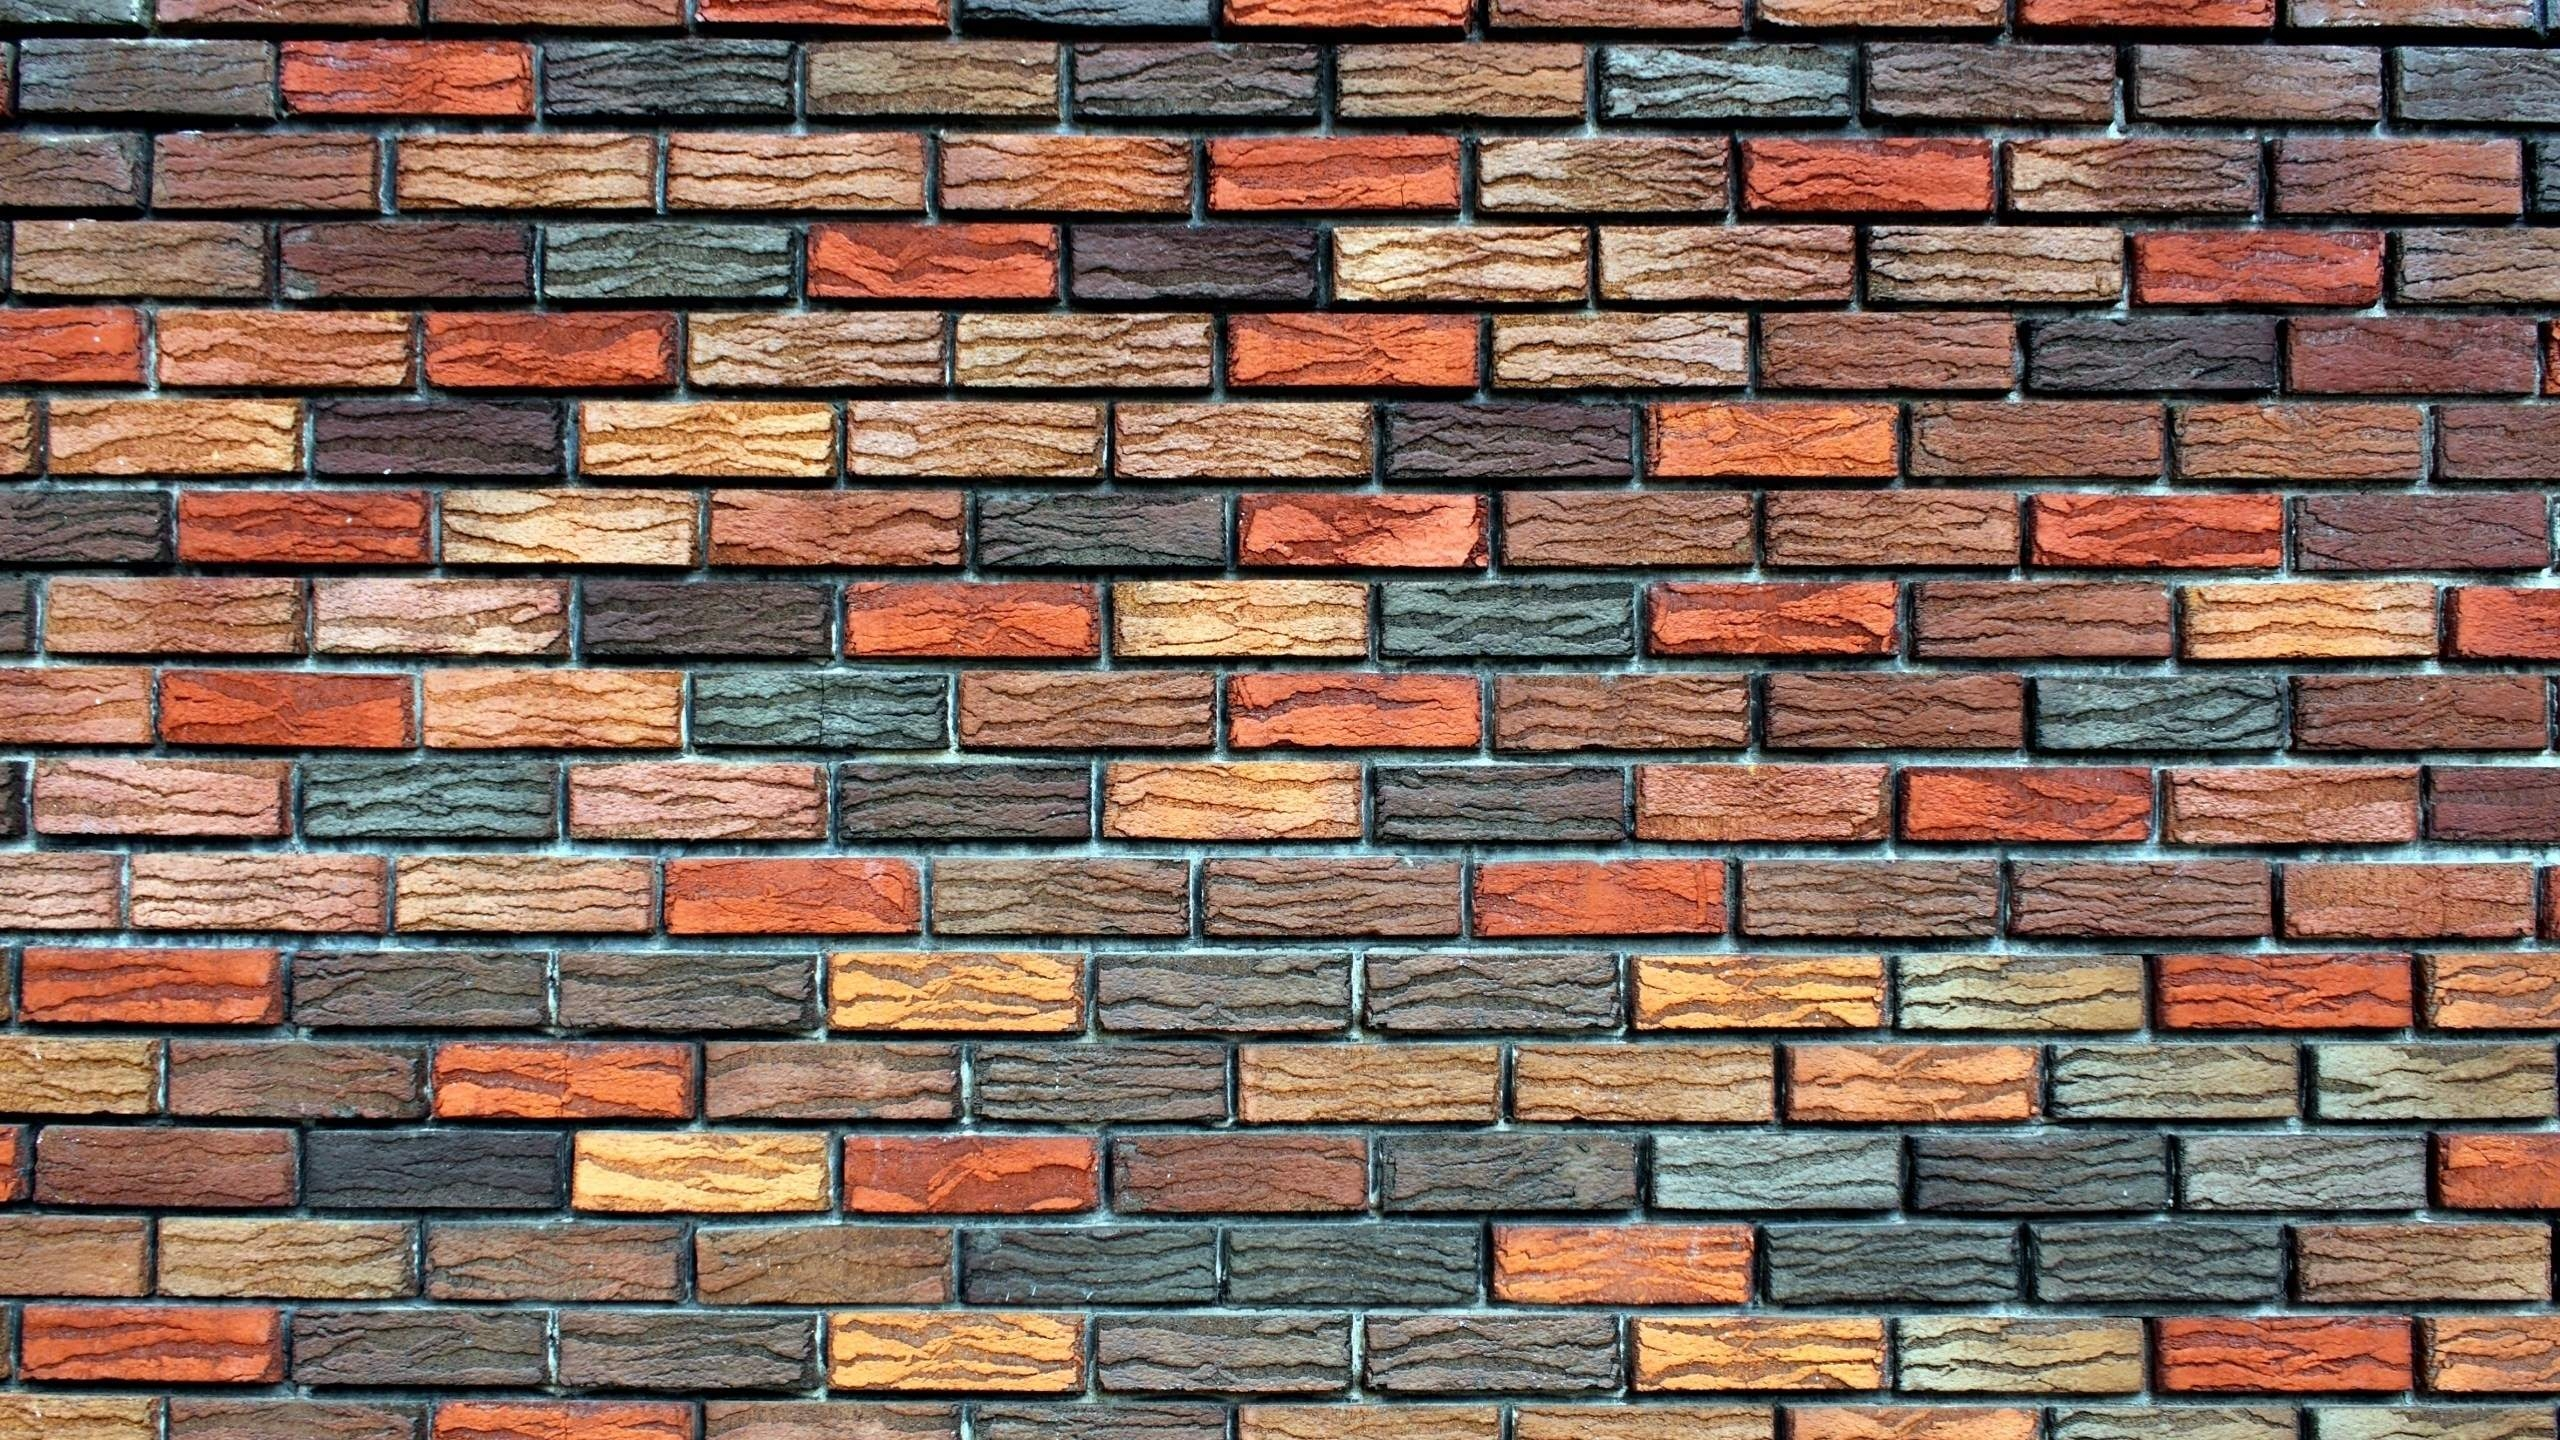 35 brick wall backgrounds psd vector eps jpg download for Black 3d brick wallpaper